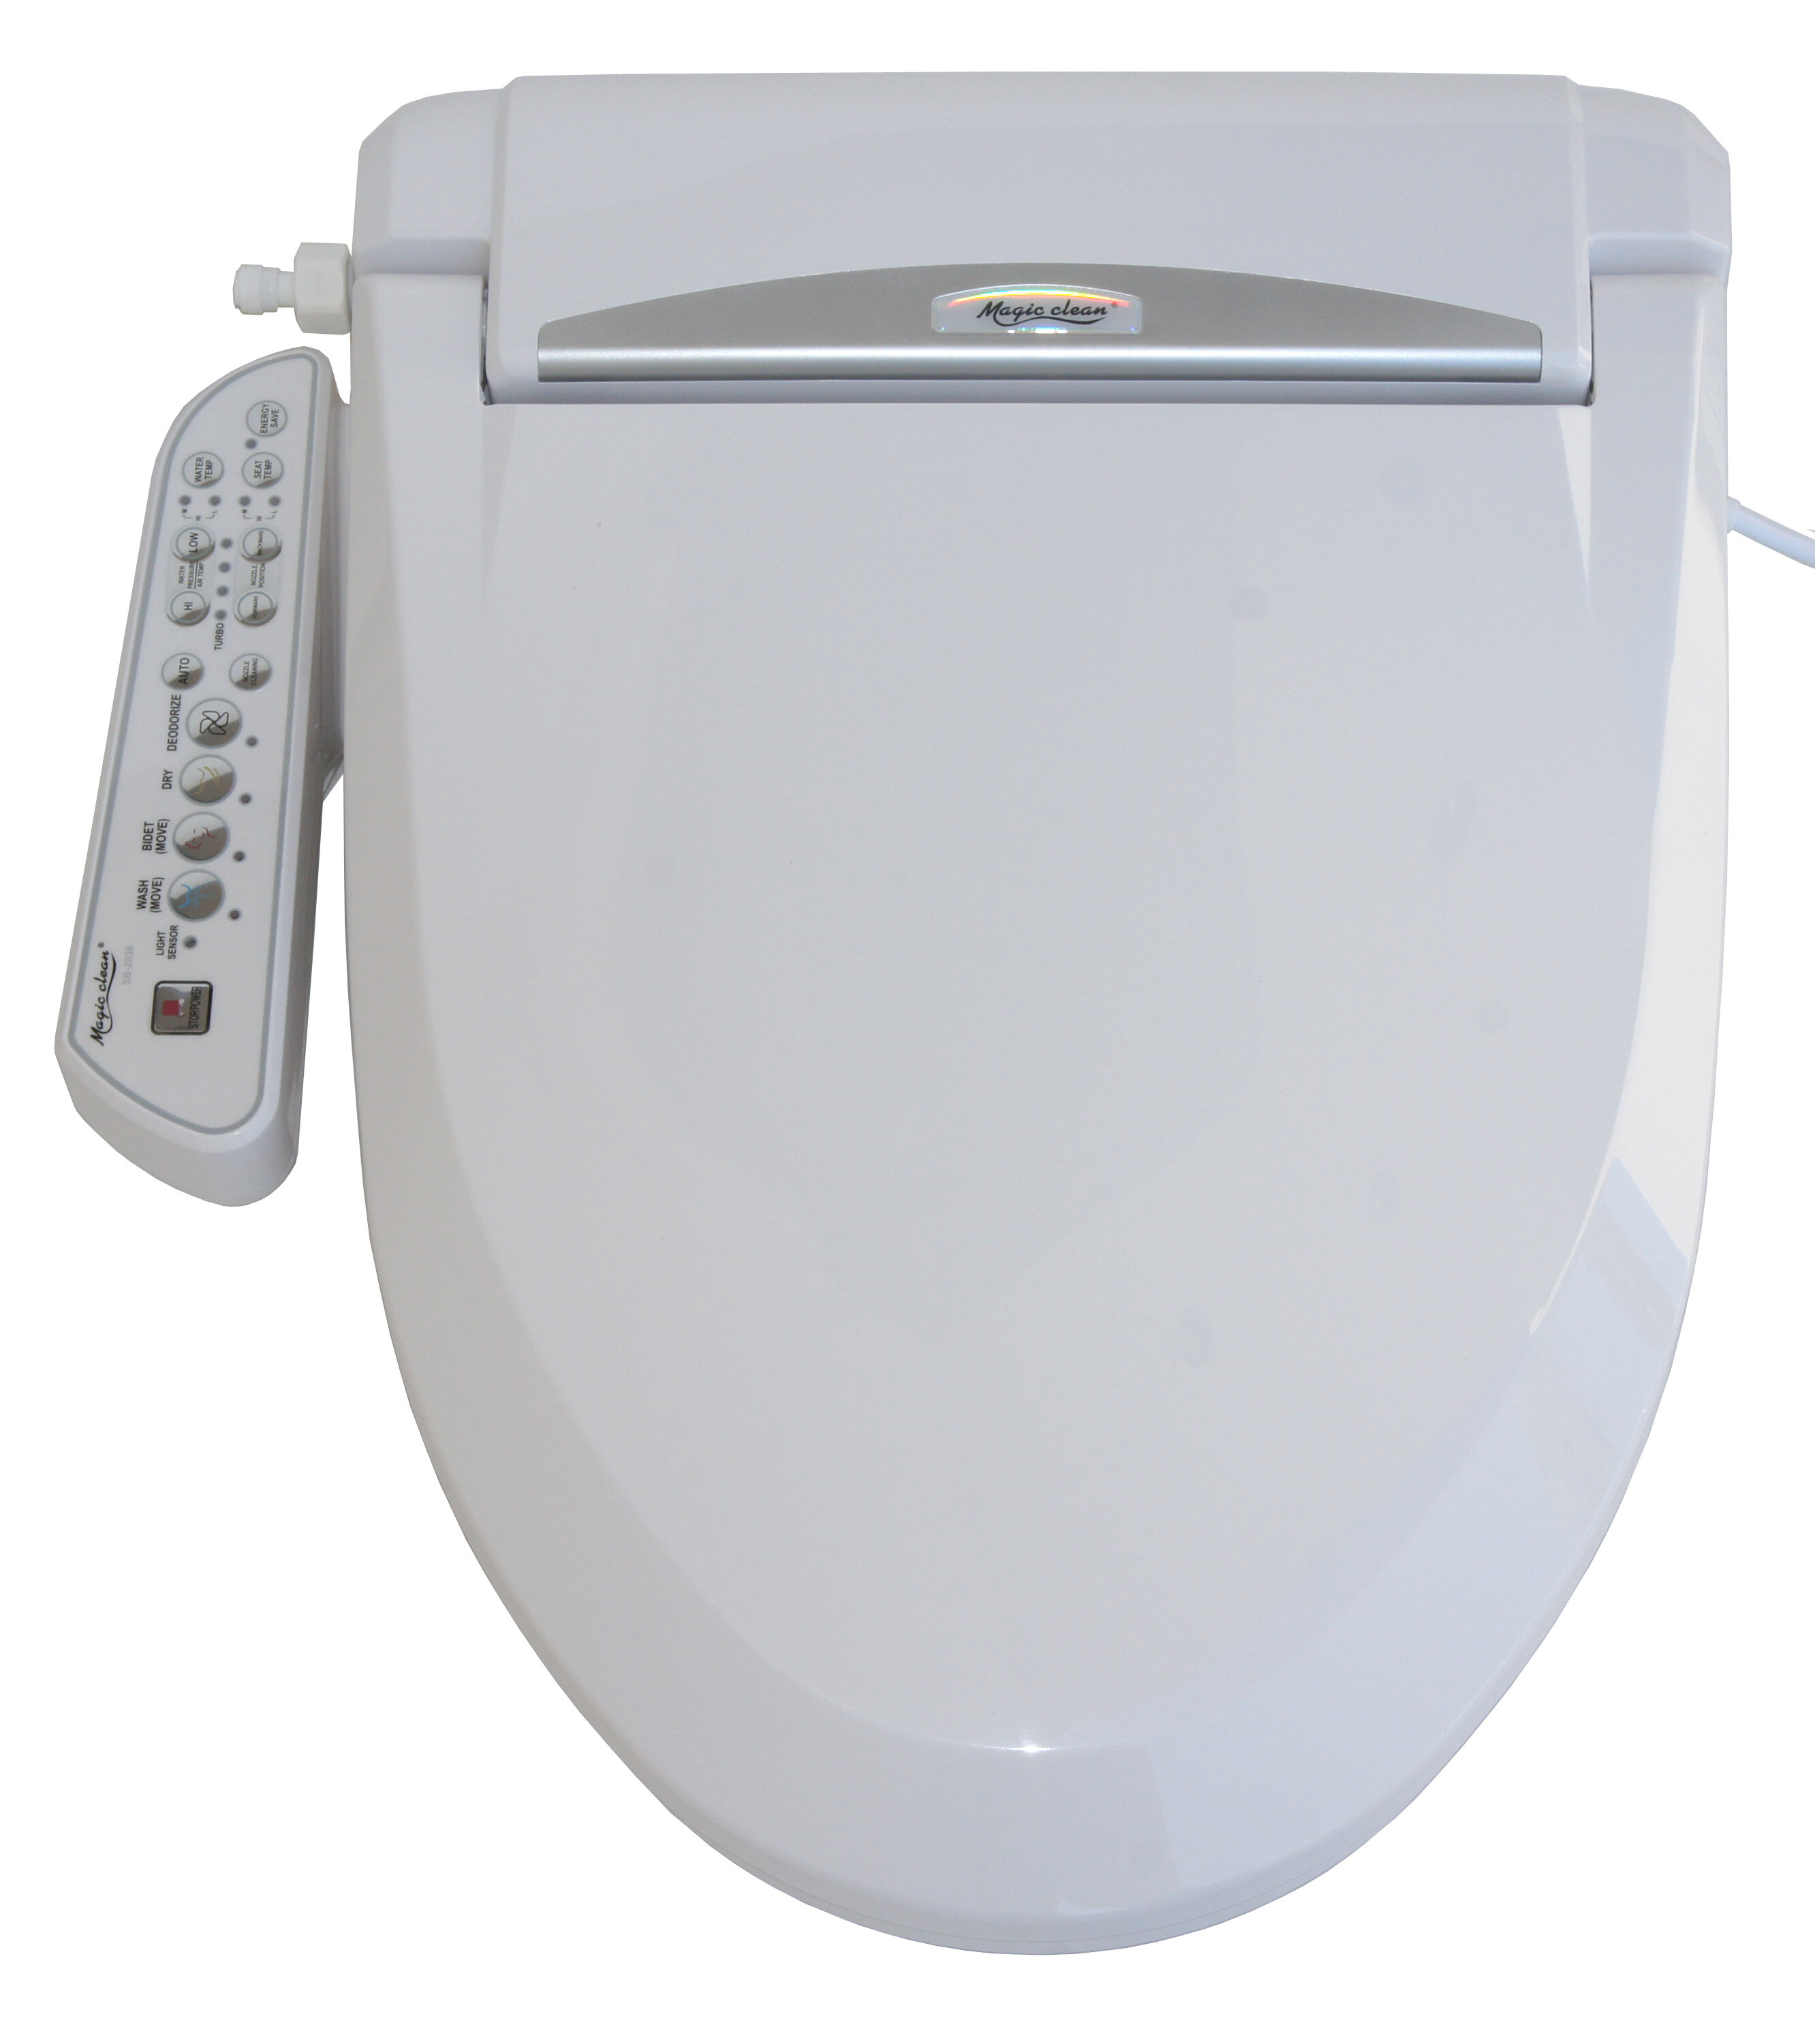 Wondrous Magic Clean Round Bidet With Dryer Pabps2019 Chair Design Images Pabps2019Com